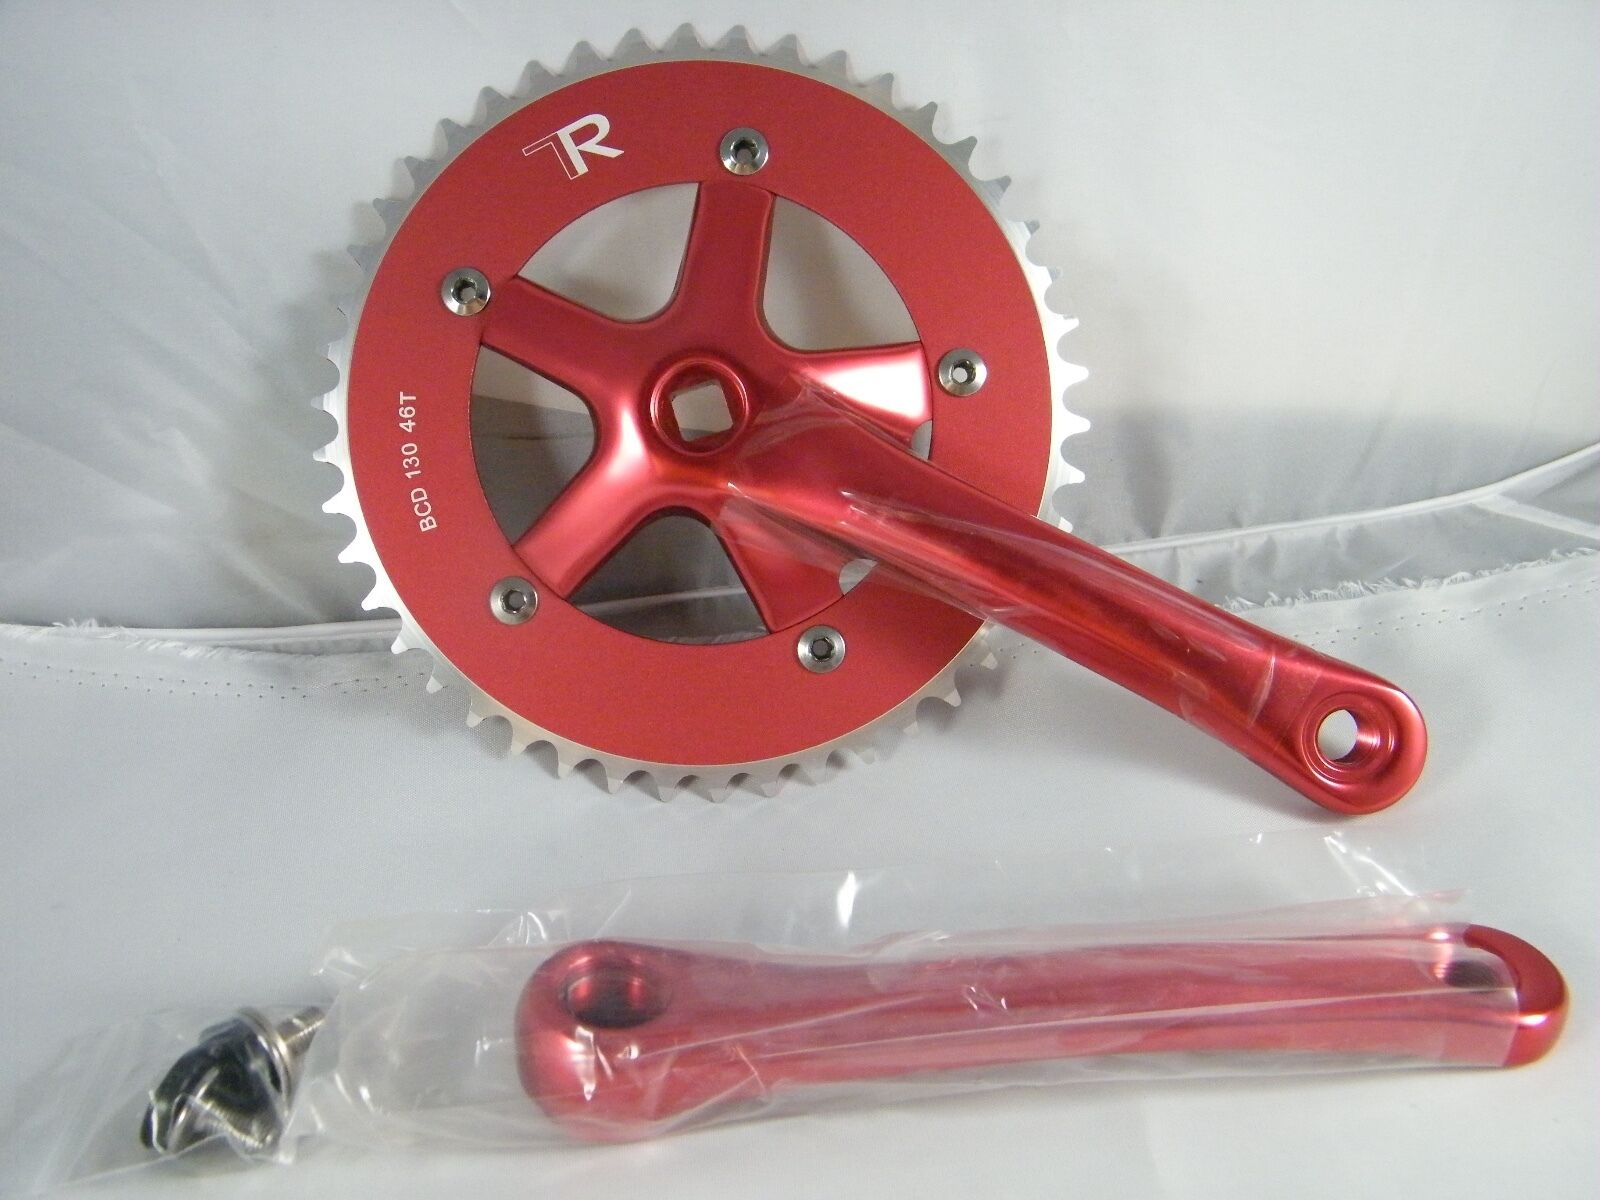 NEW  DRIVELINE CRANKSET  TK13 170 MM RED PART DL-TK-170-RD,  BCD 130  46T  wholesale cheap and high quality